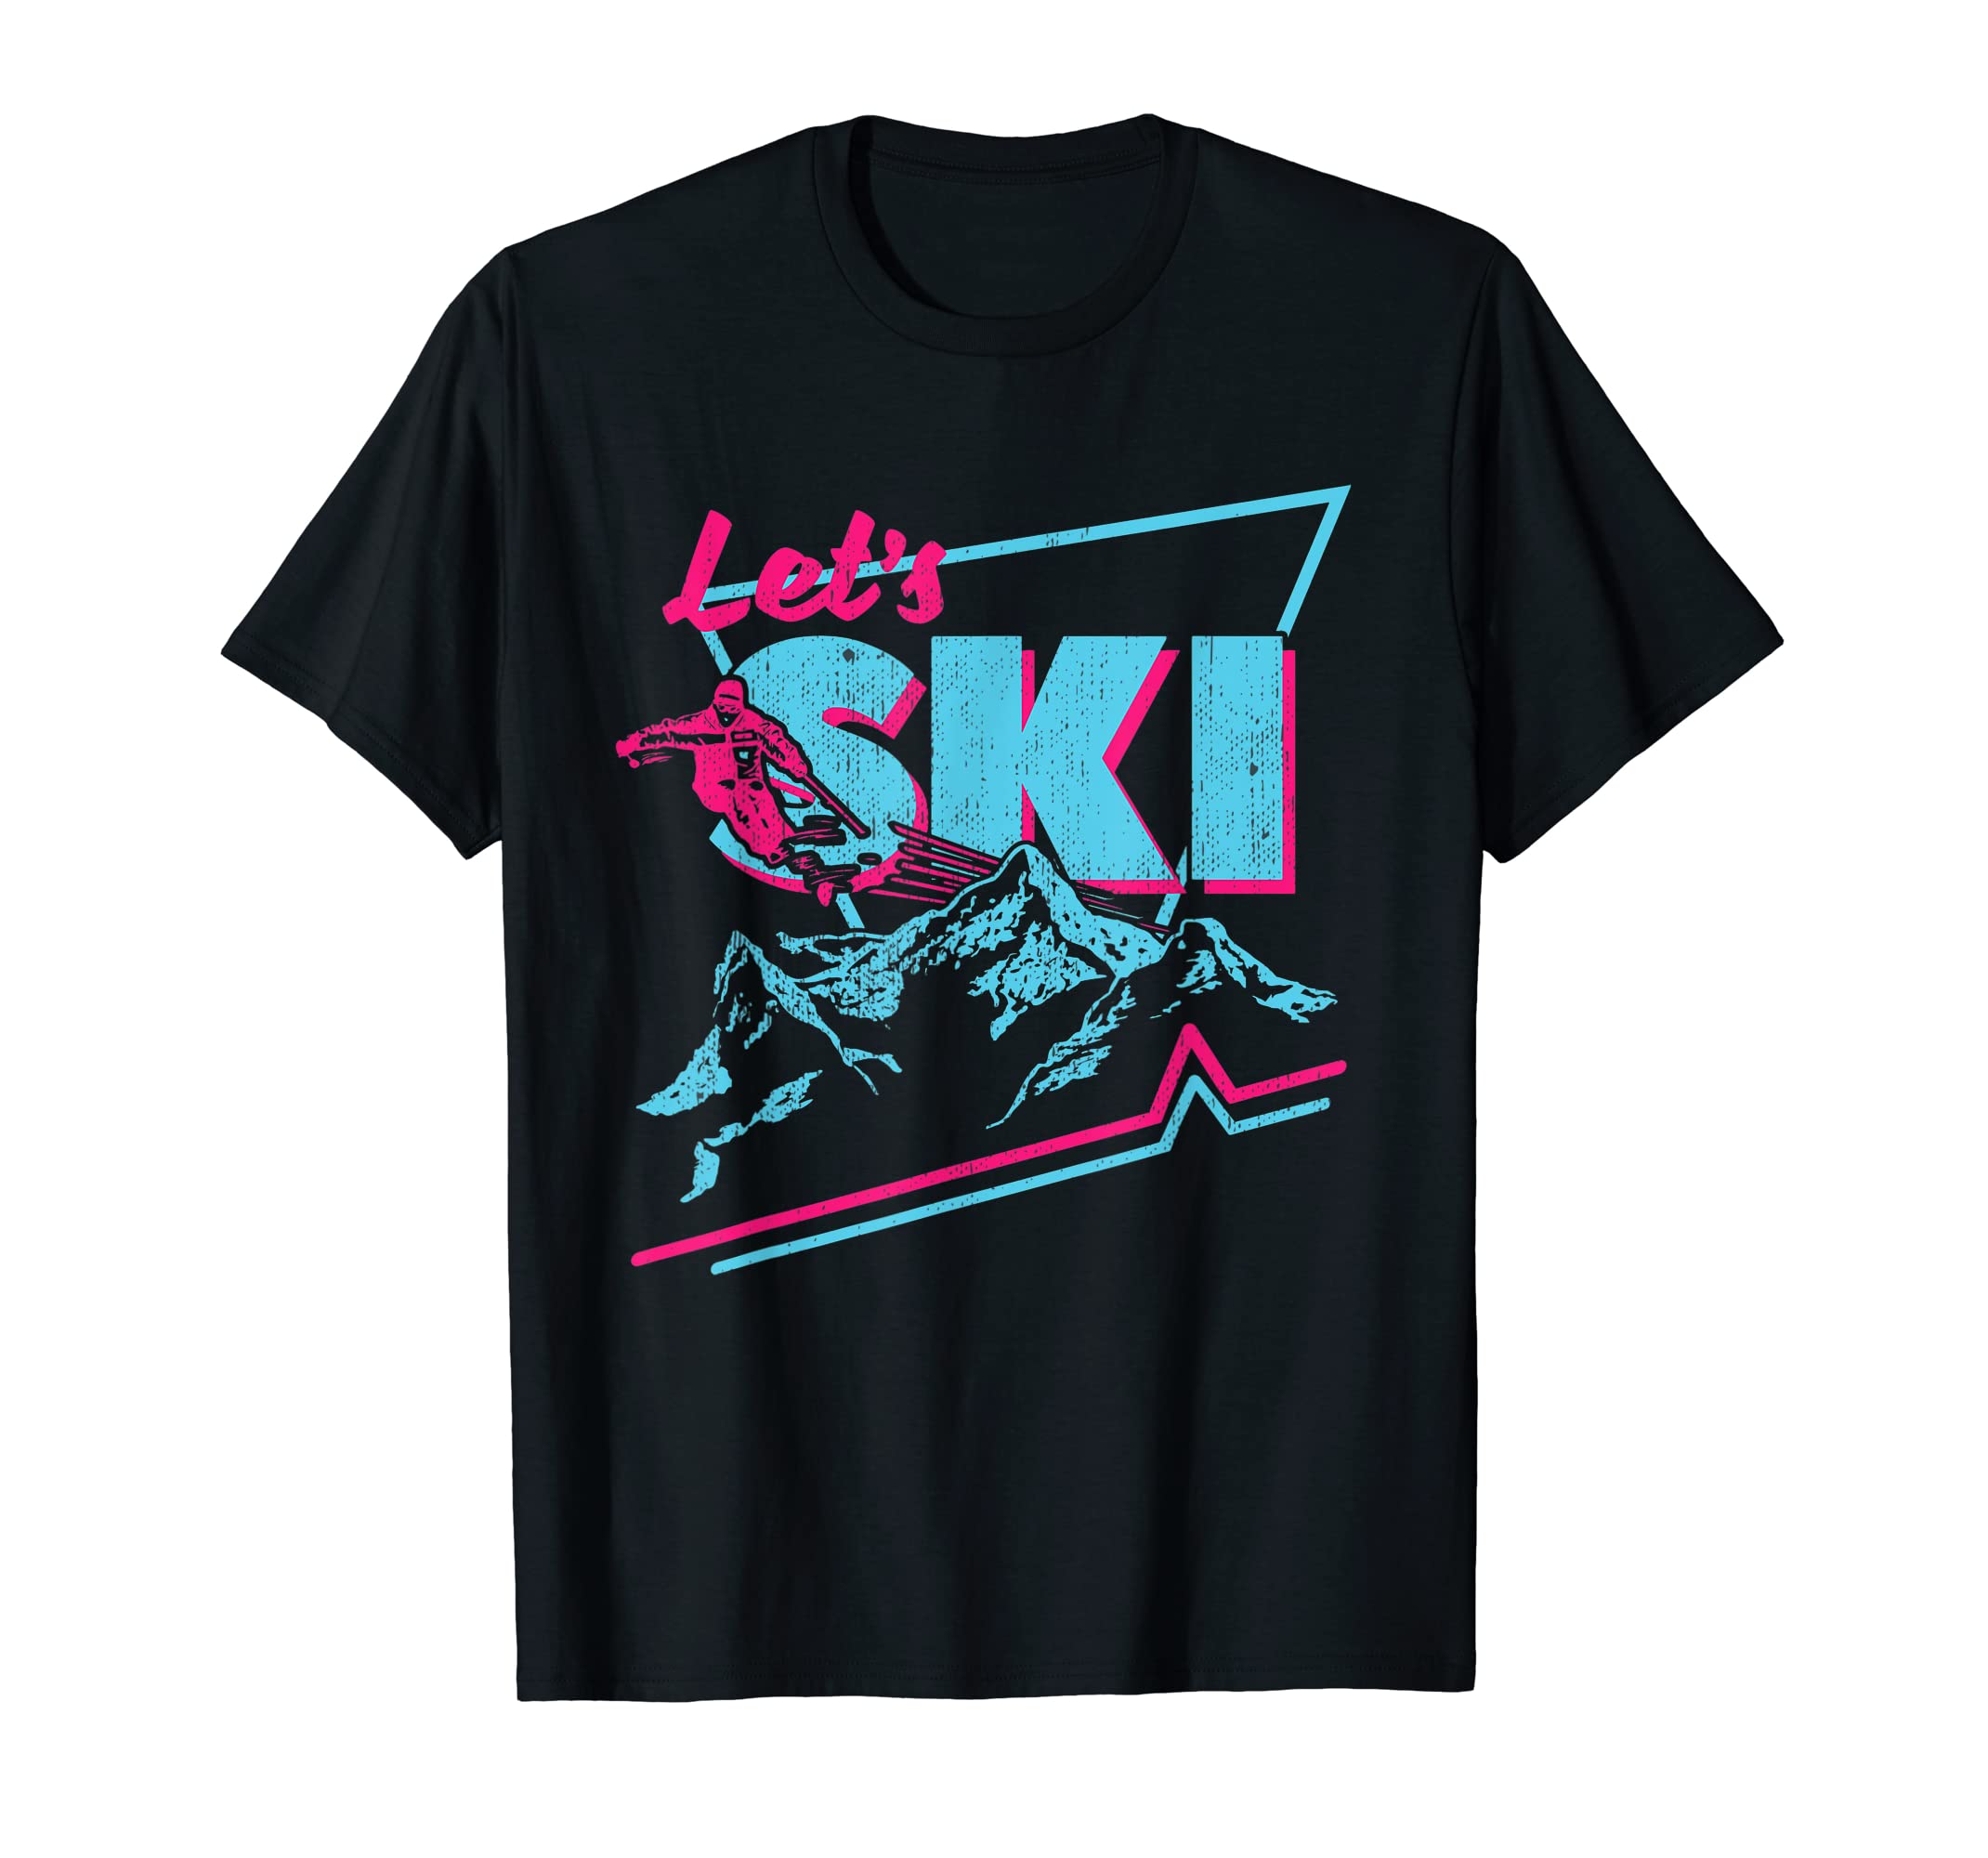 Retro 80s Let's Ski Neon T-shirt for Men or Women